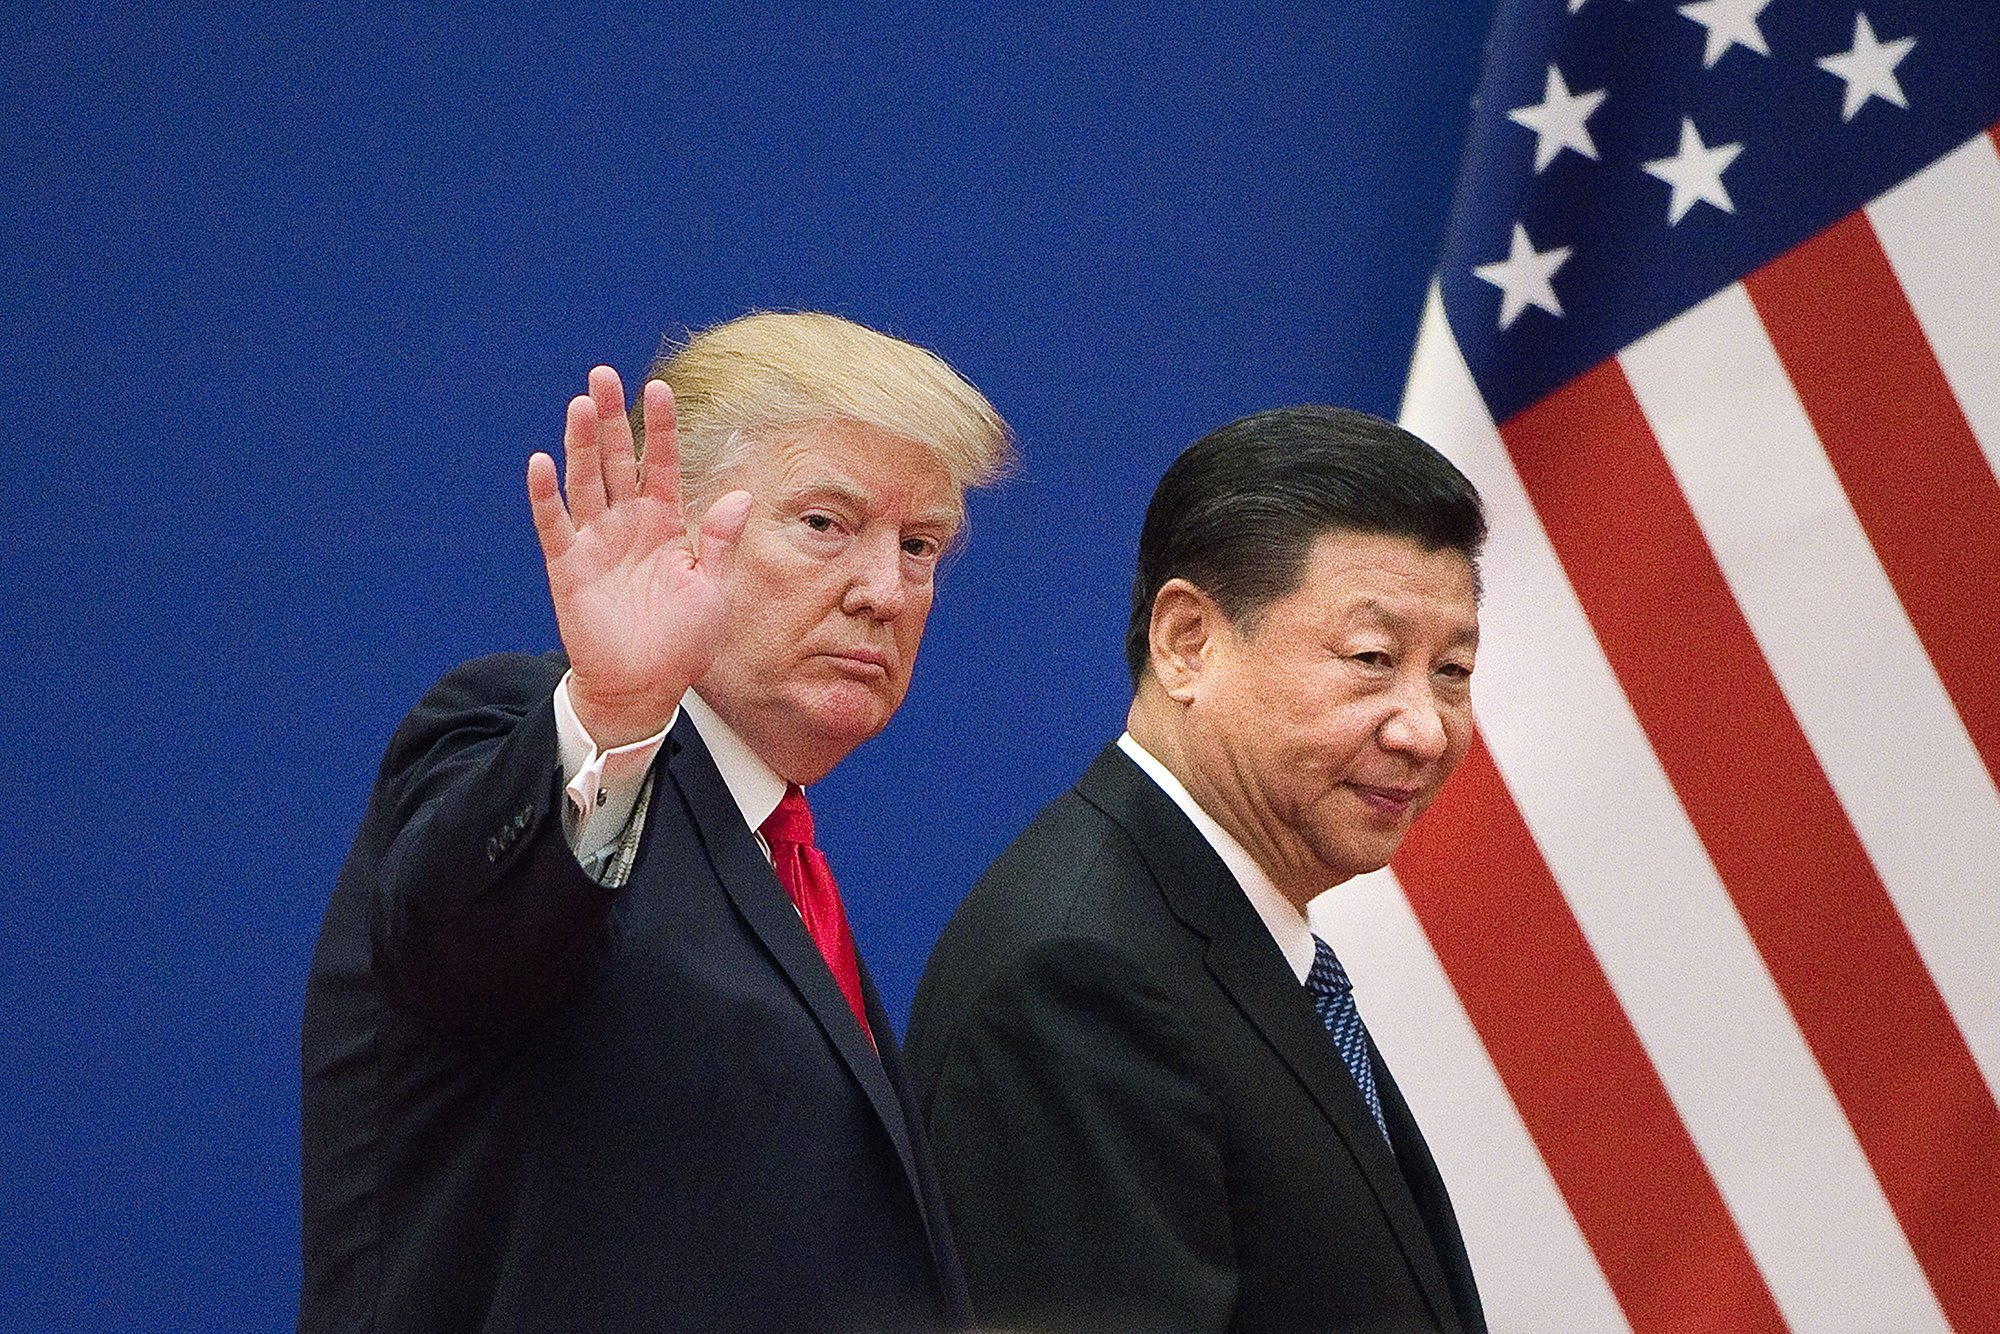 Trump and China confirm agreement on 'phase one' trade deal